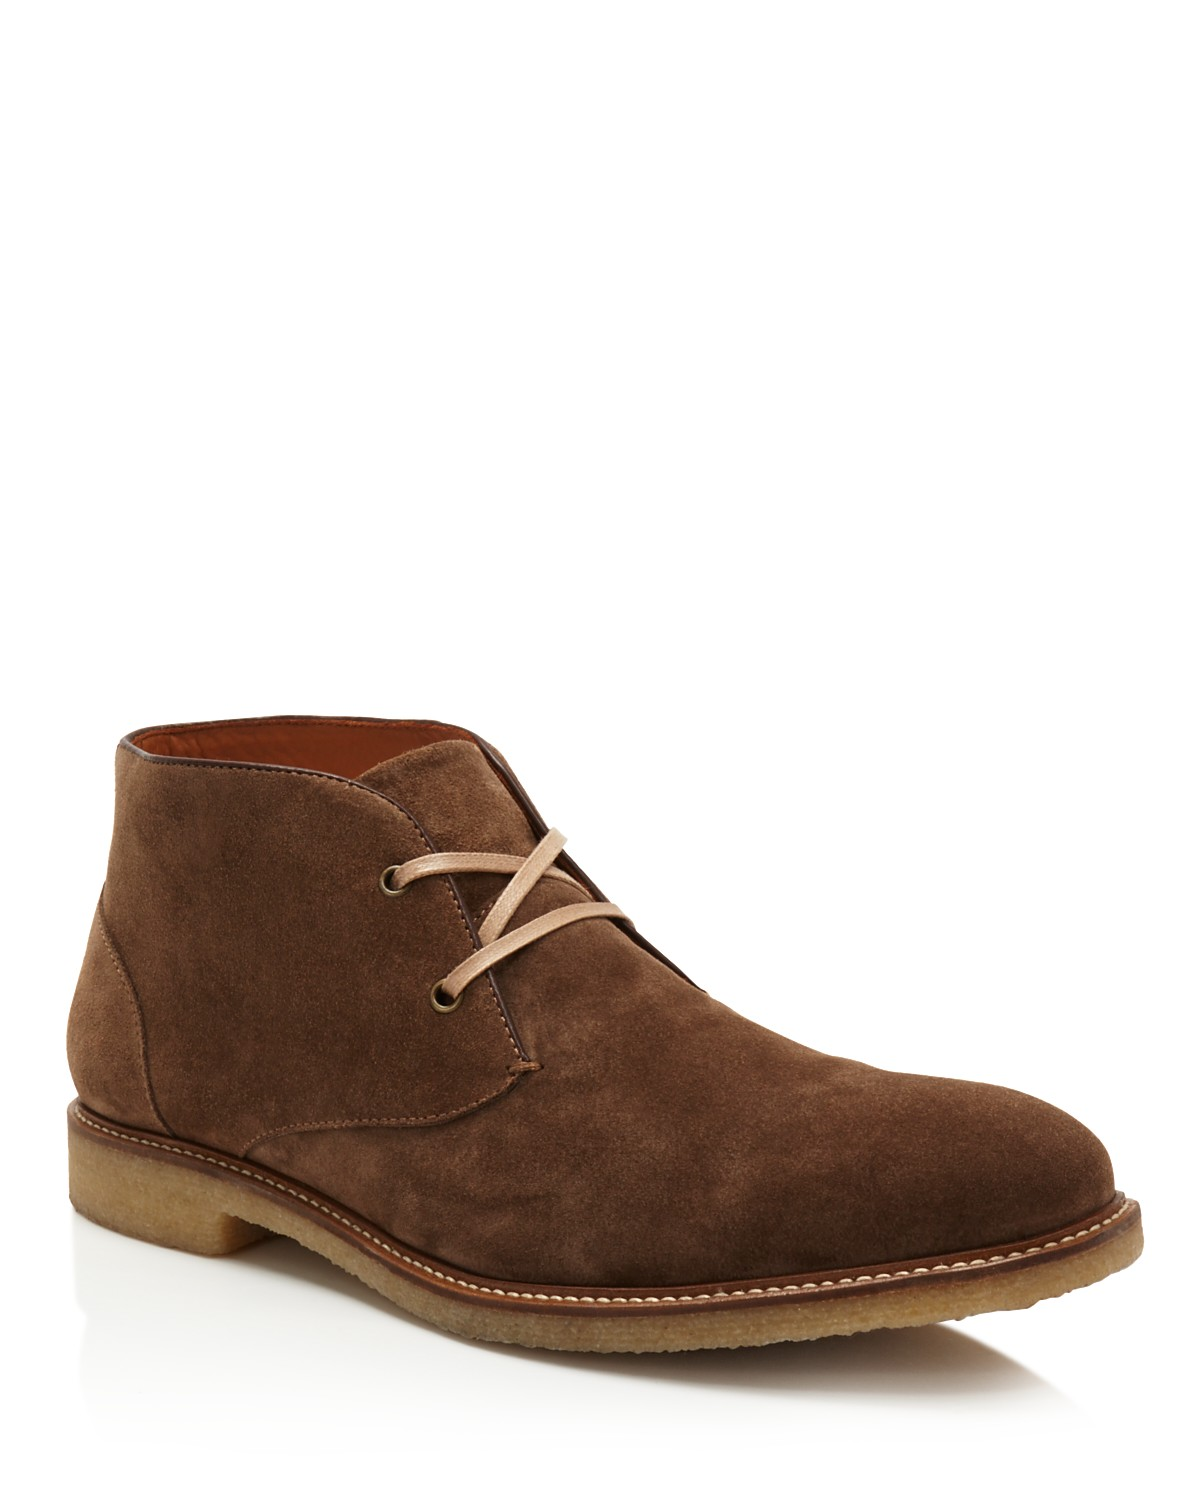 Bloomingdale's Leather Chukka Boots - 100% Exclusive 0VD2OpJ